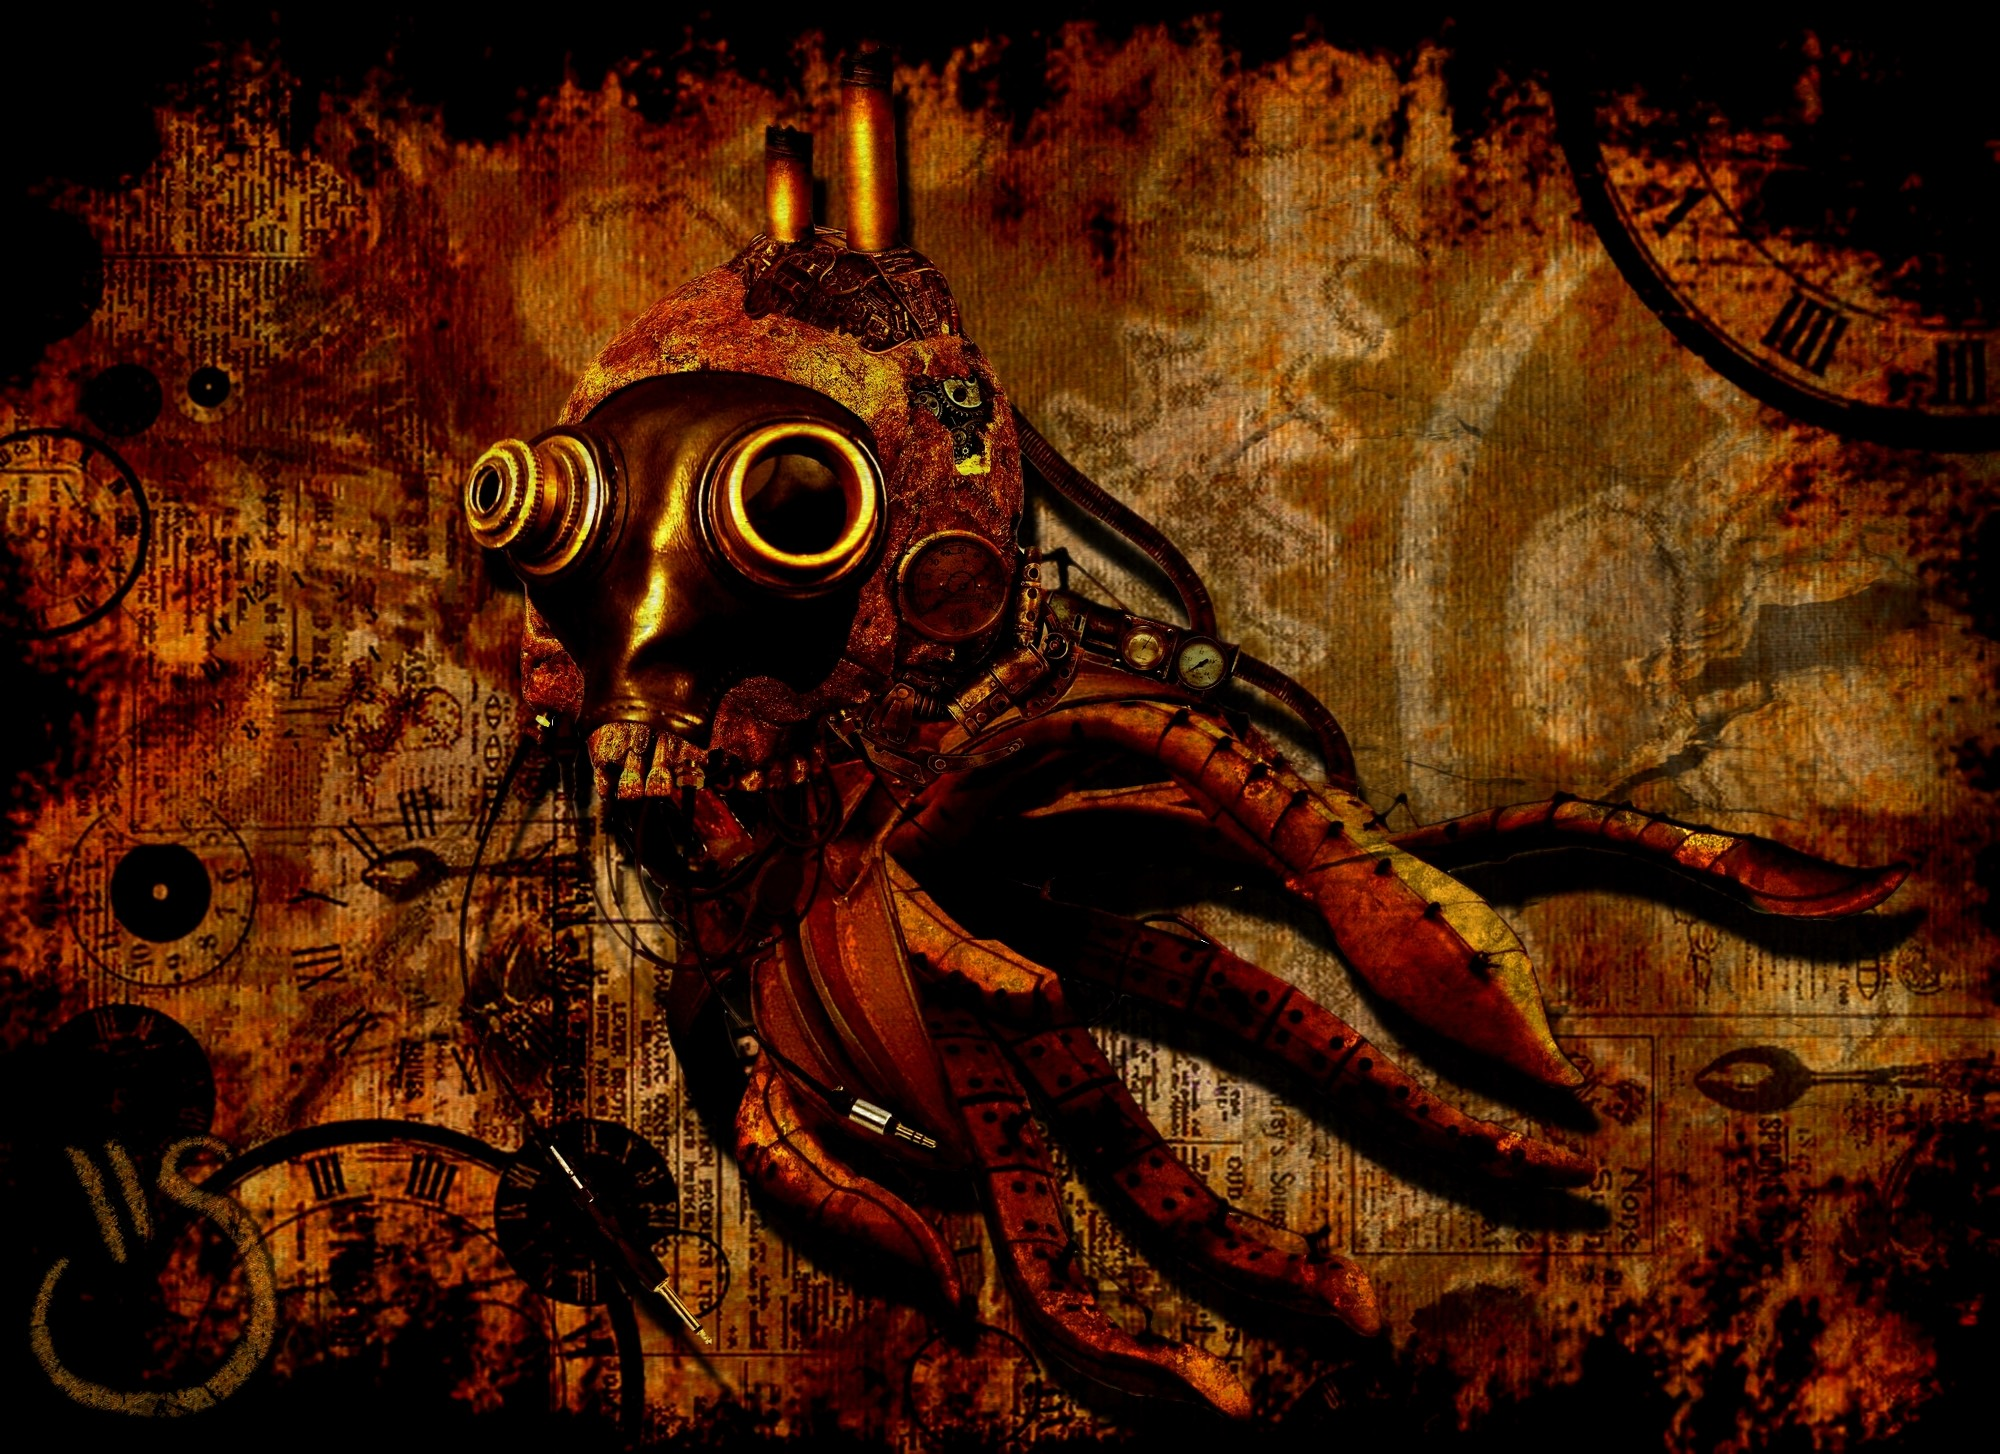 Res: 2000x1454, HD Wallpaper of Steampunk Wallpaper Hd Background, Desktop Wallpaper  Steampunk Wallpaper Hd Background